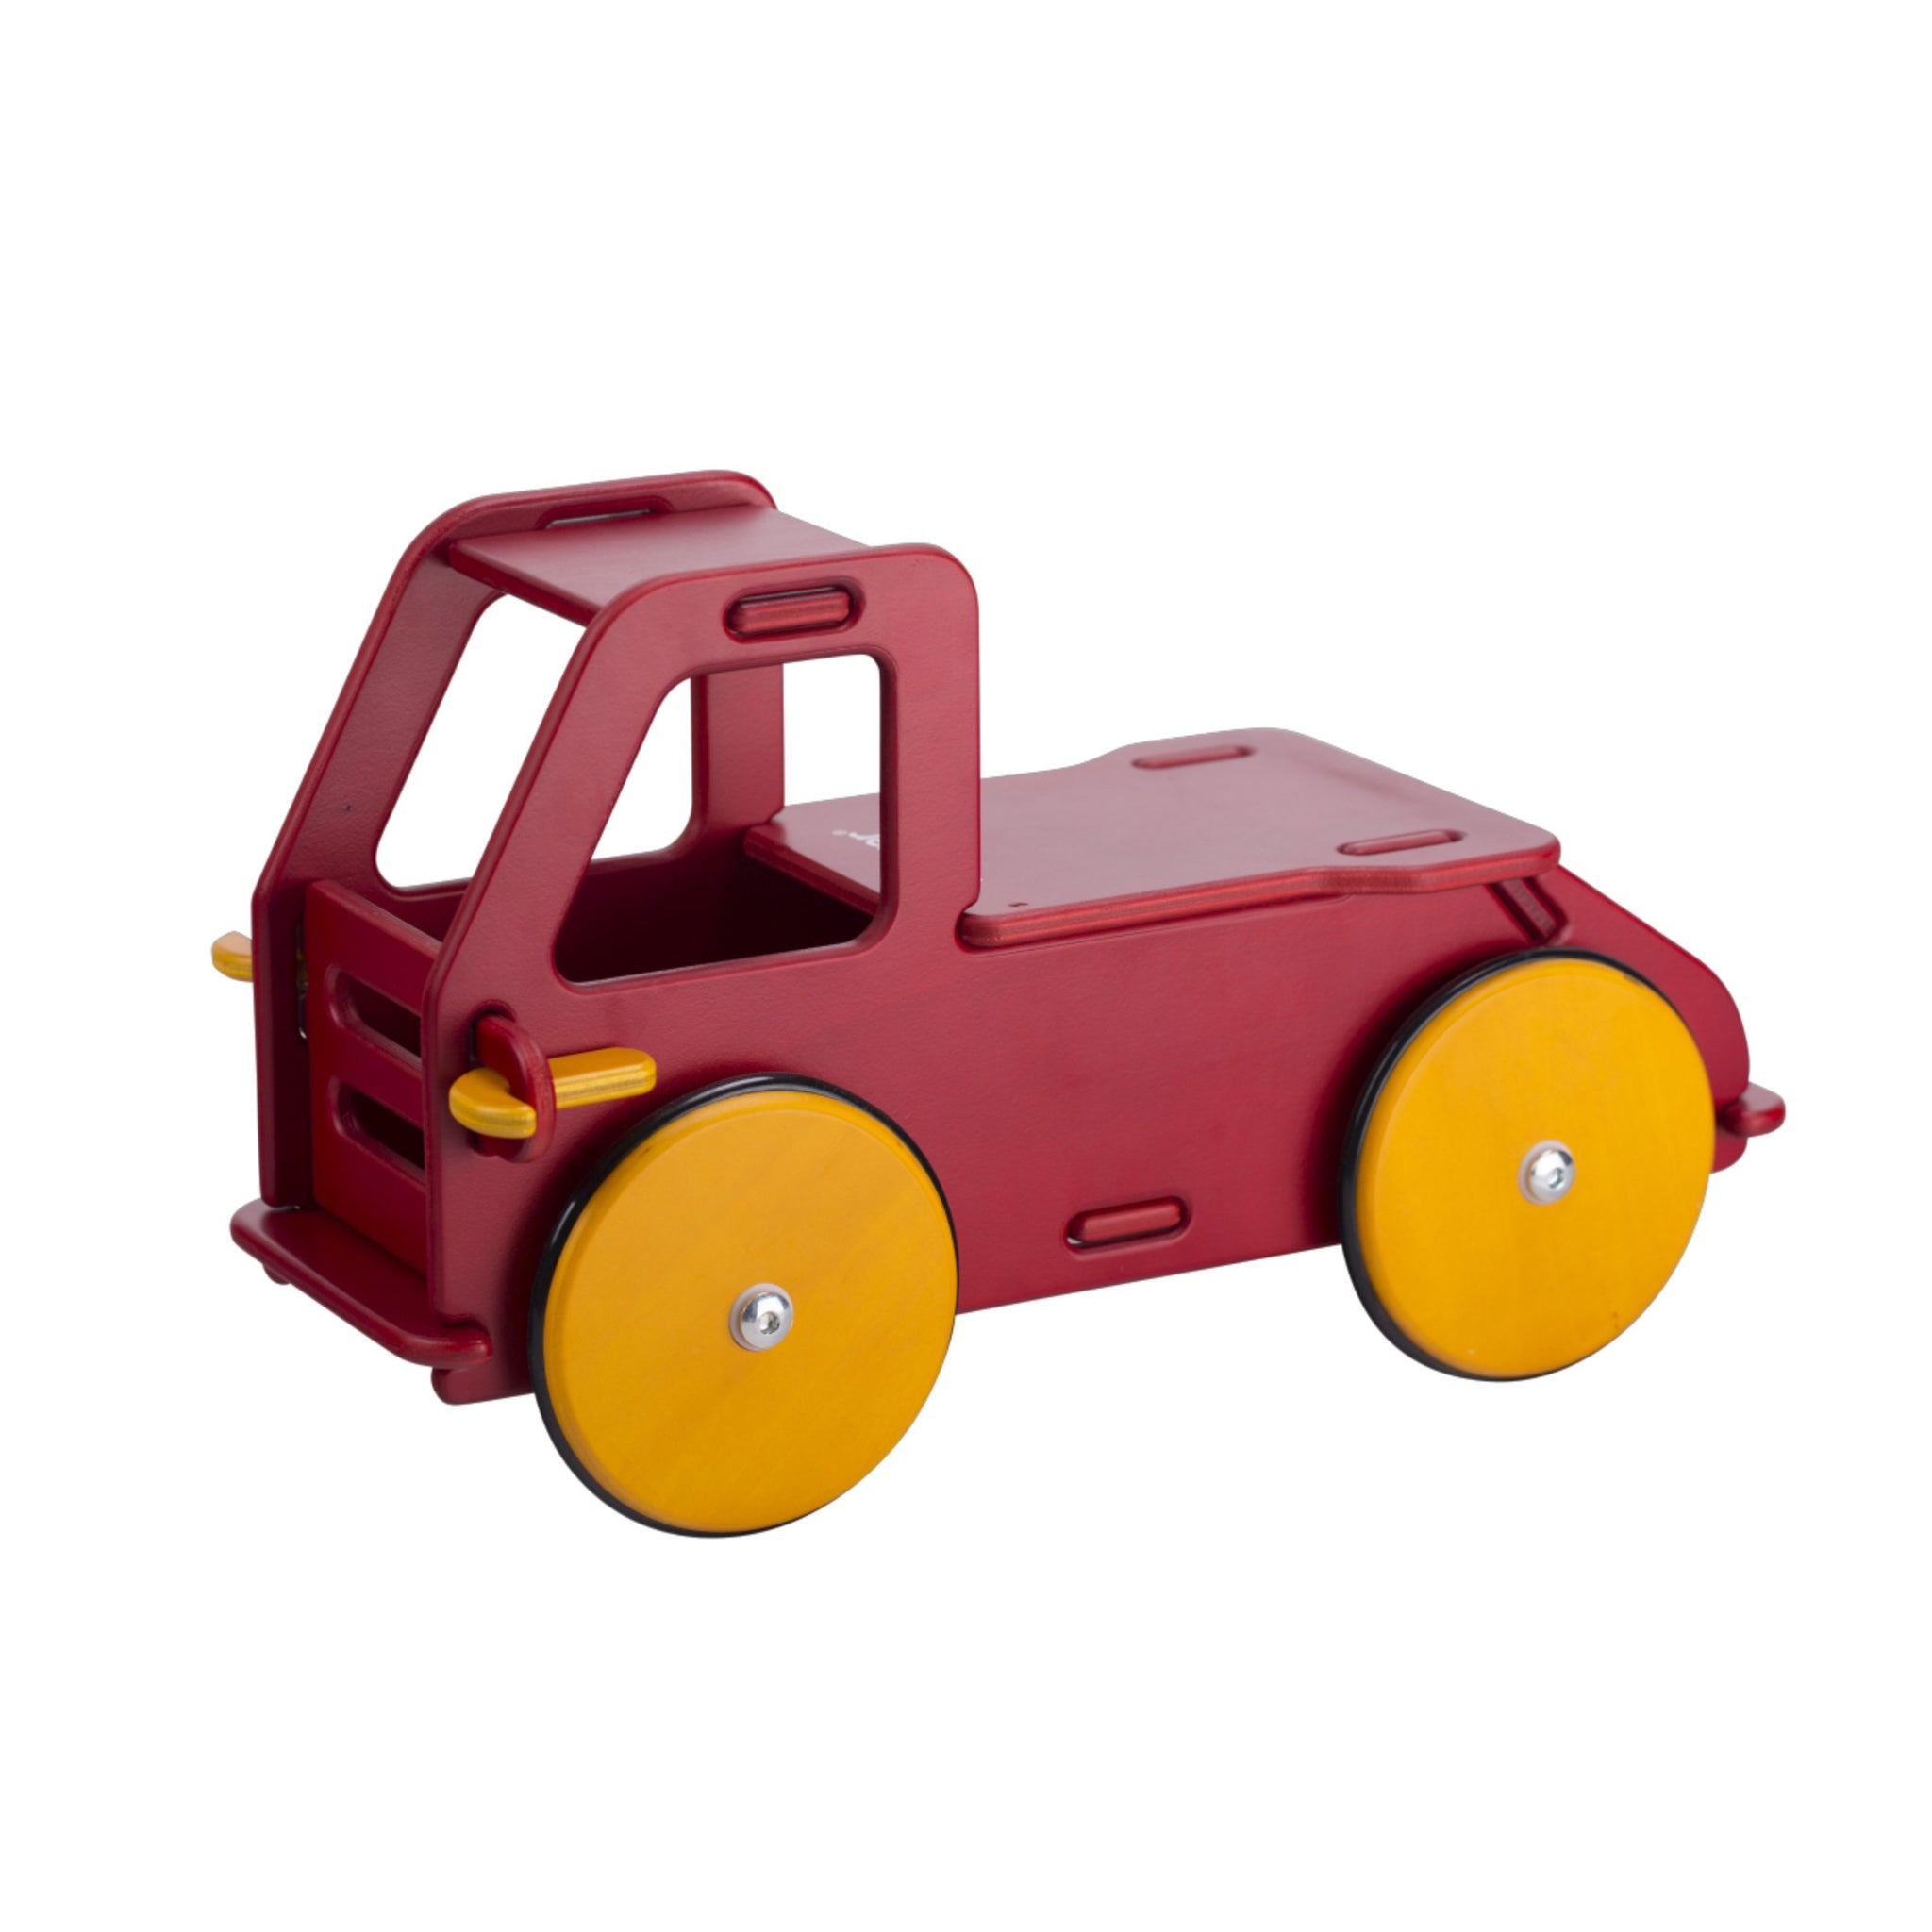 Moover Toys Baby Truck Moover Toys Play Vehicles Red at Little Earth Nest Eco Shop